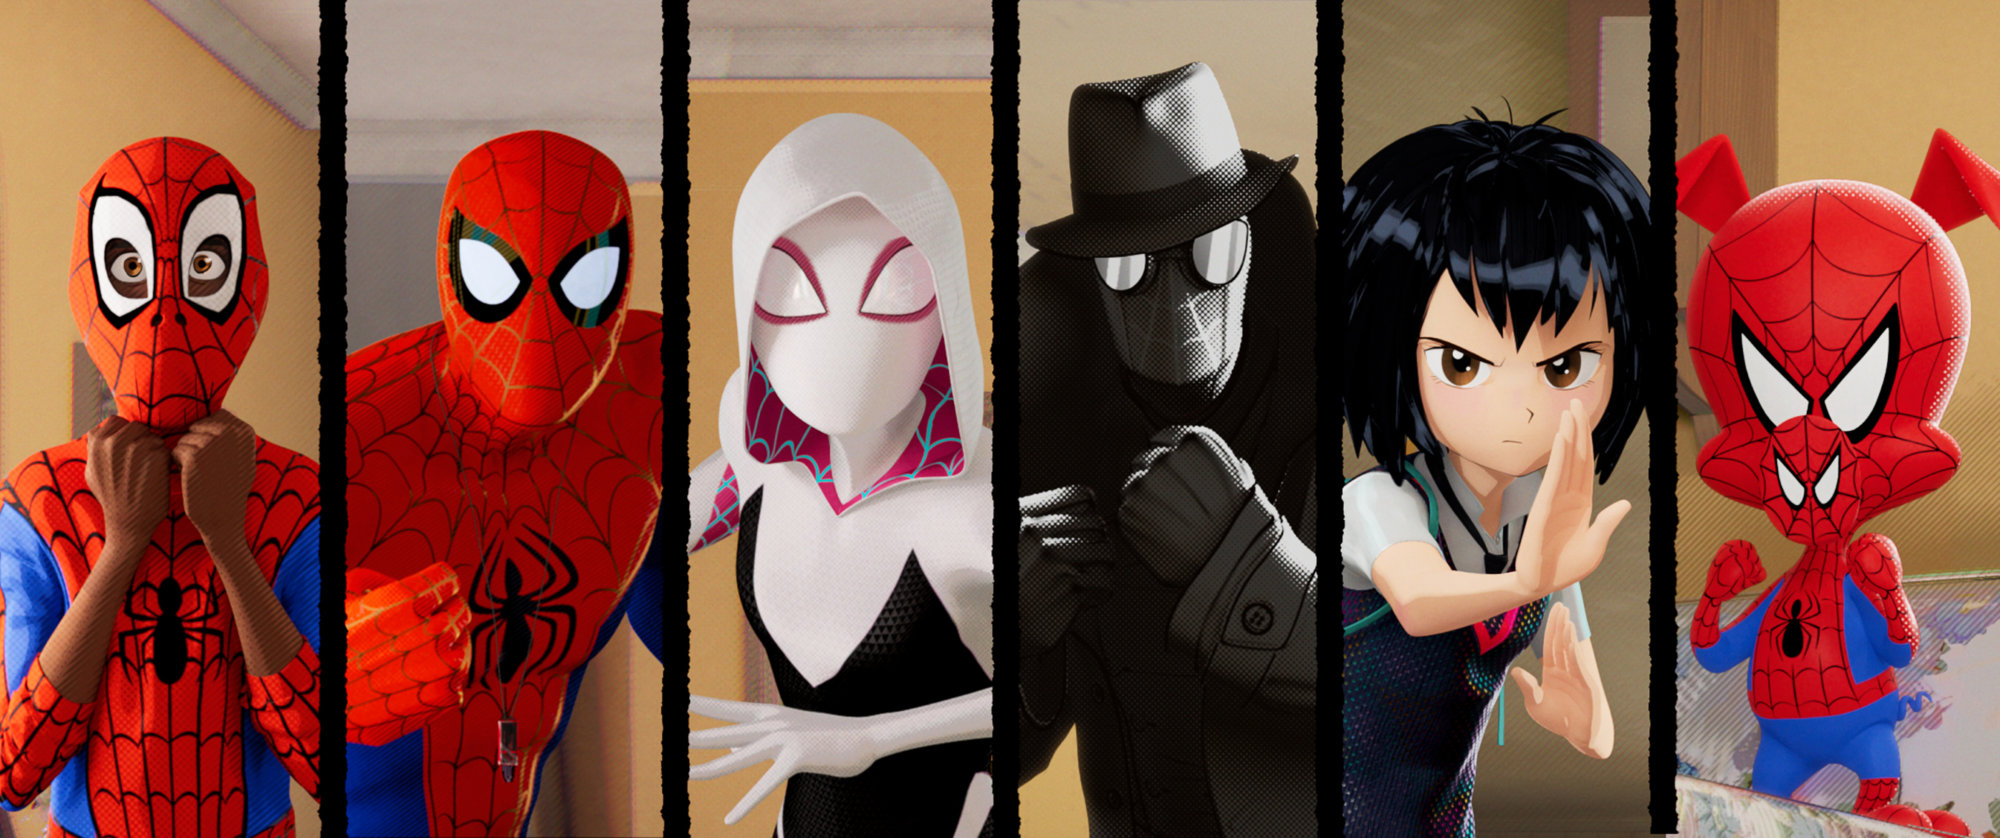 SpiderMan into the Spiderverse 020.jpg